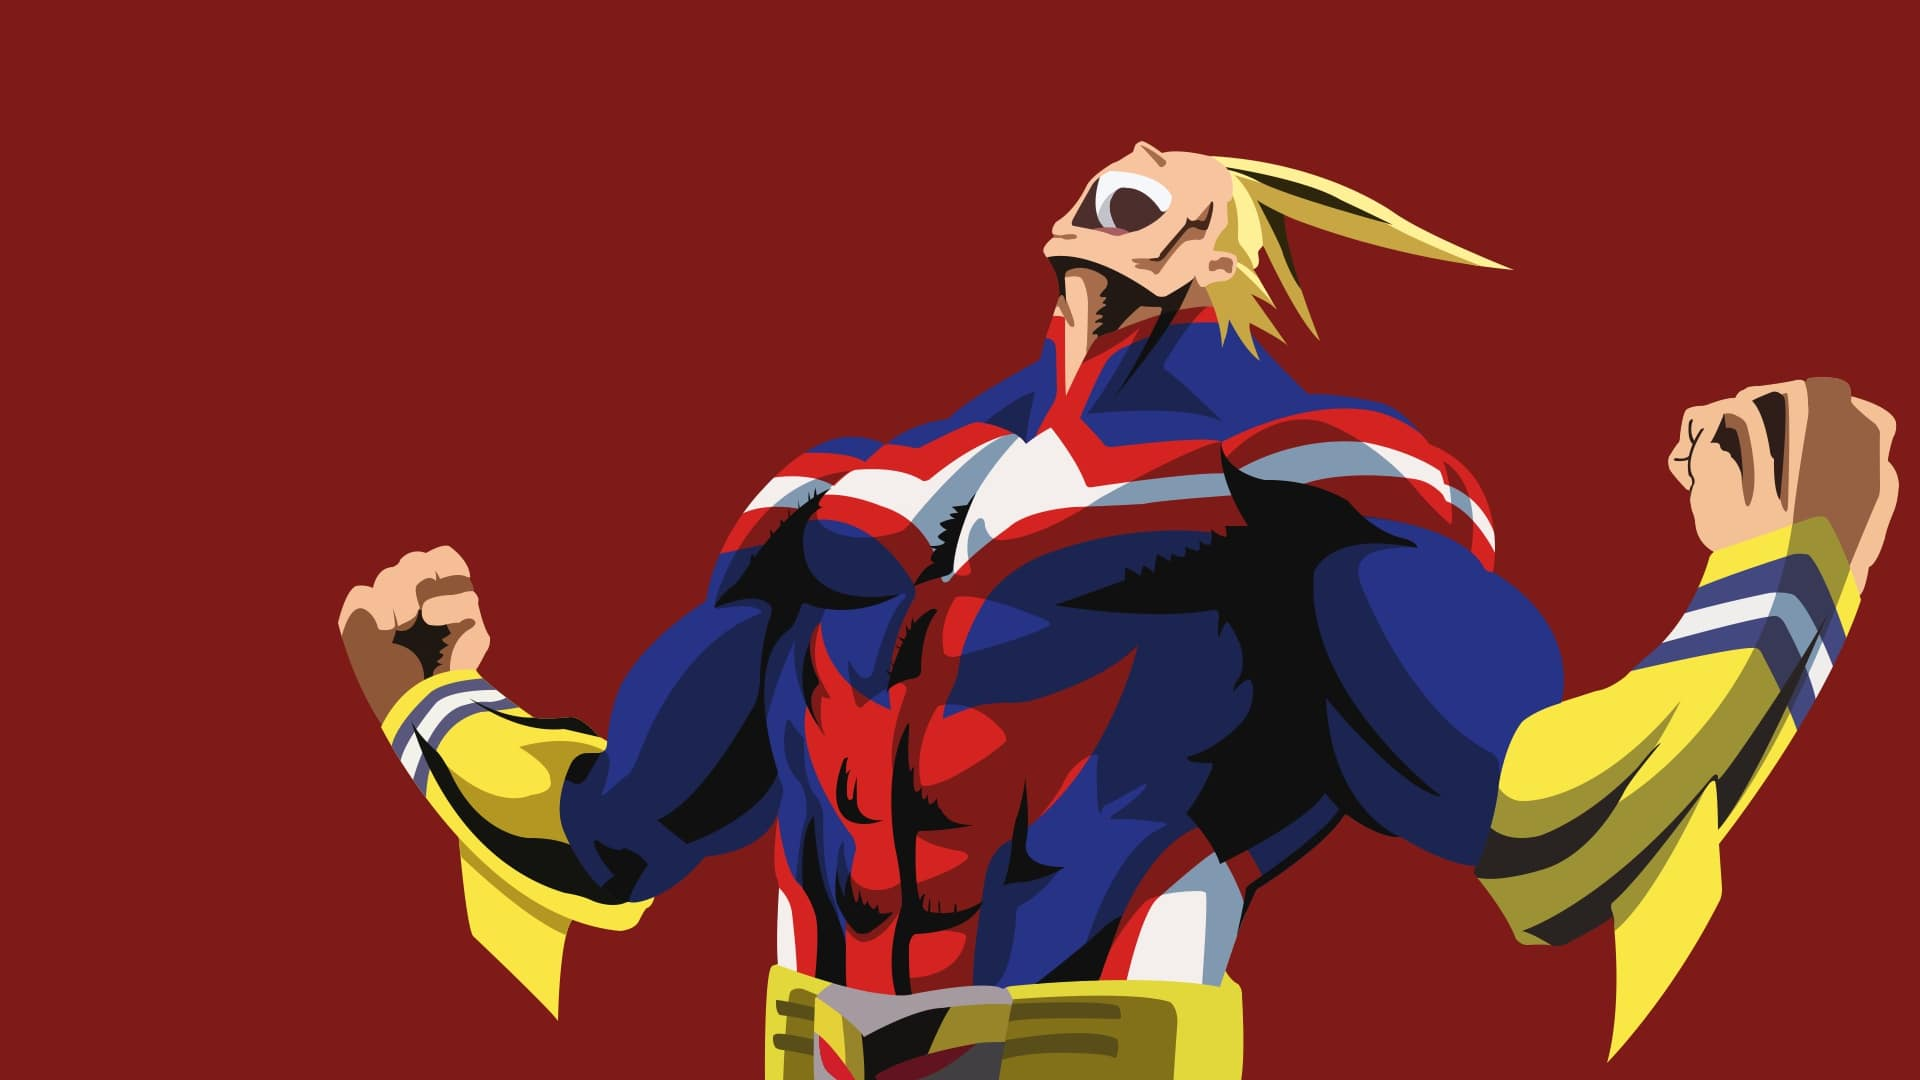 Download All Might Wallpaper Hd Backgrounds Download Itlcat